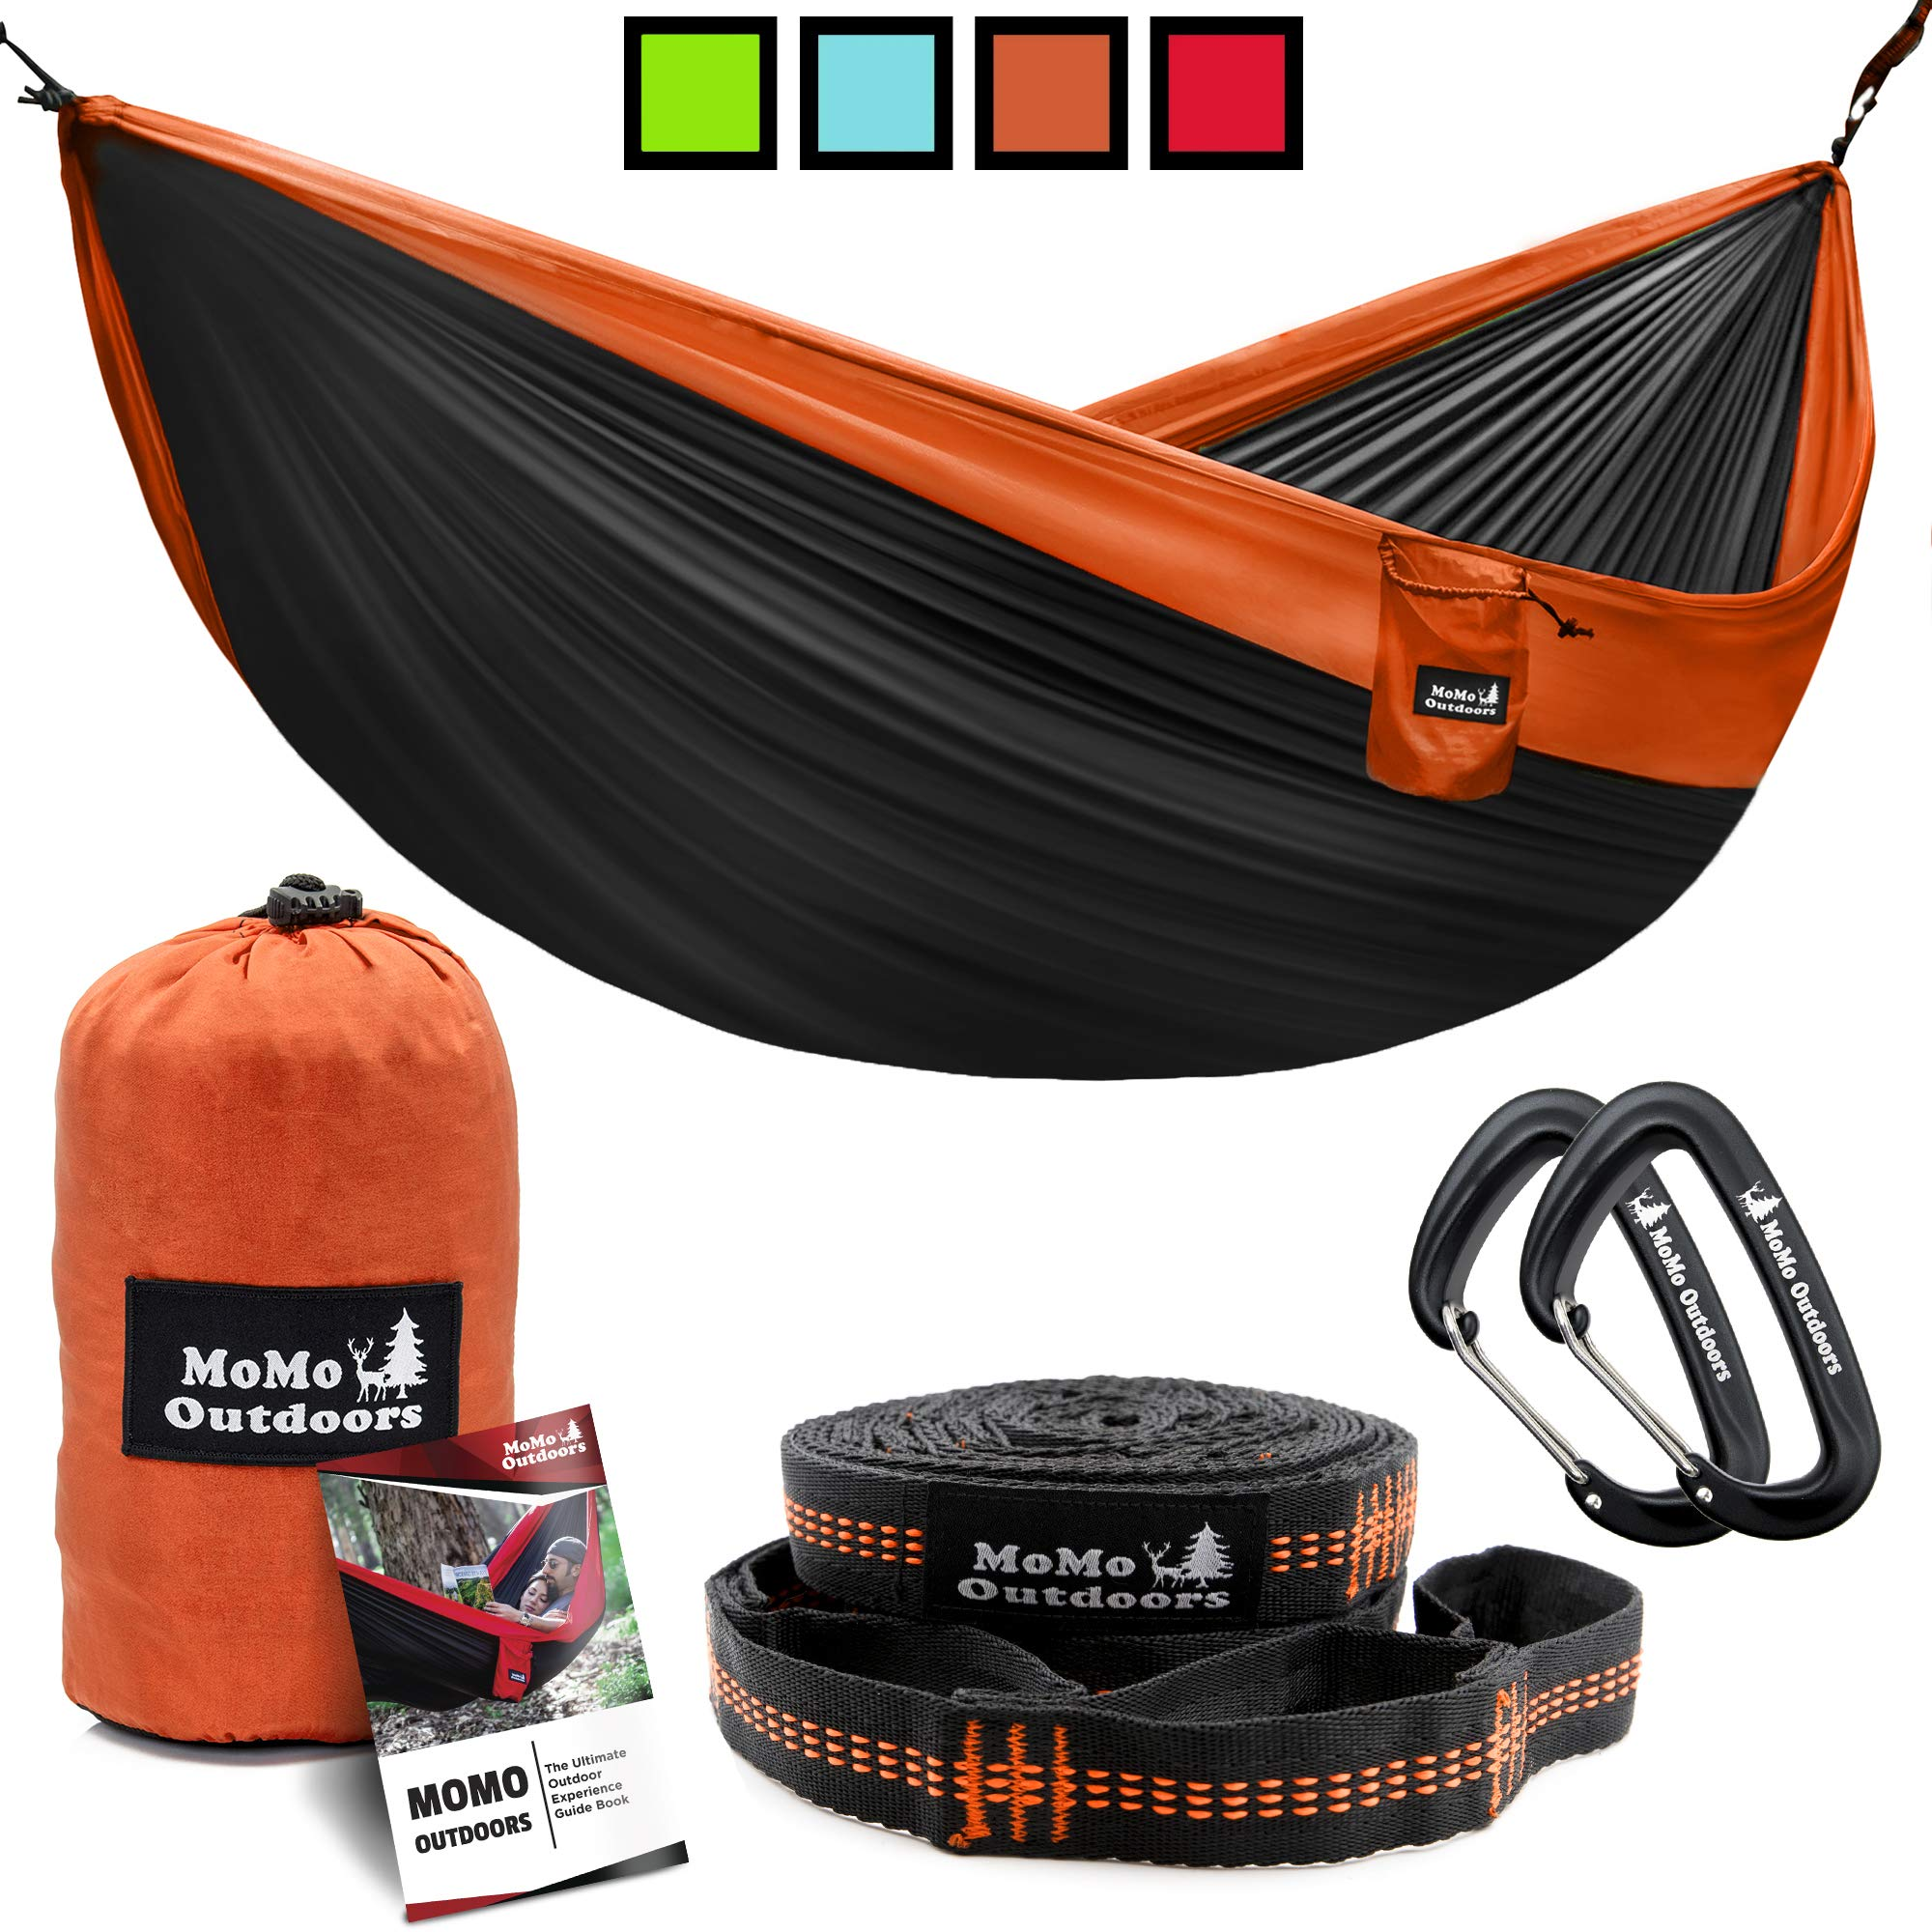 Lightweight Double Camping Hammock - Adjustable Tree Straps & Ultralight Carabiners Included - Two Person Best Portable Parachute Nylon Hammocks for Hiking, Backpacking, Travel & Backyard - Easy Setup by MoMo Outdoors